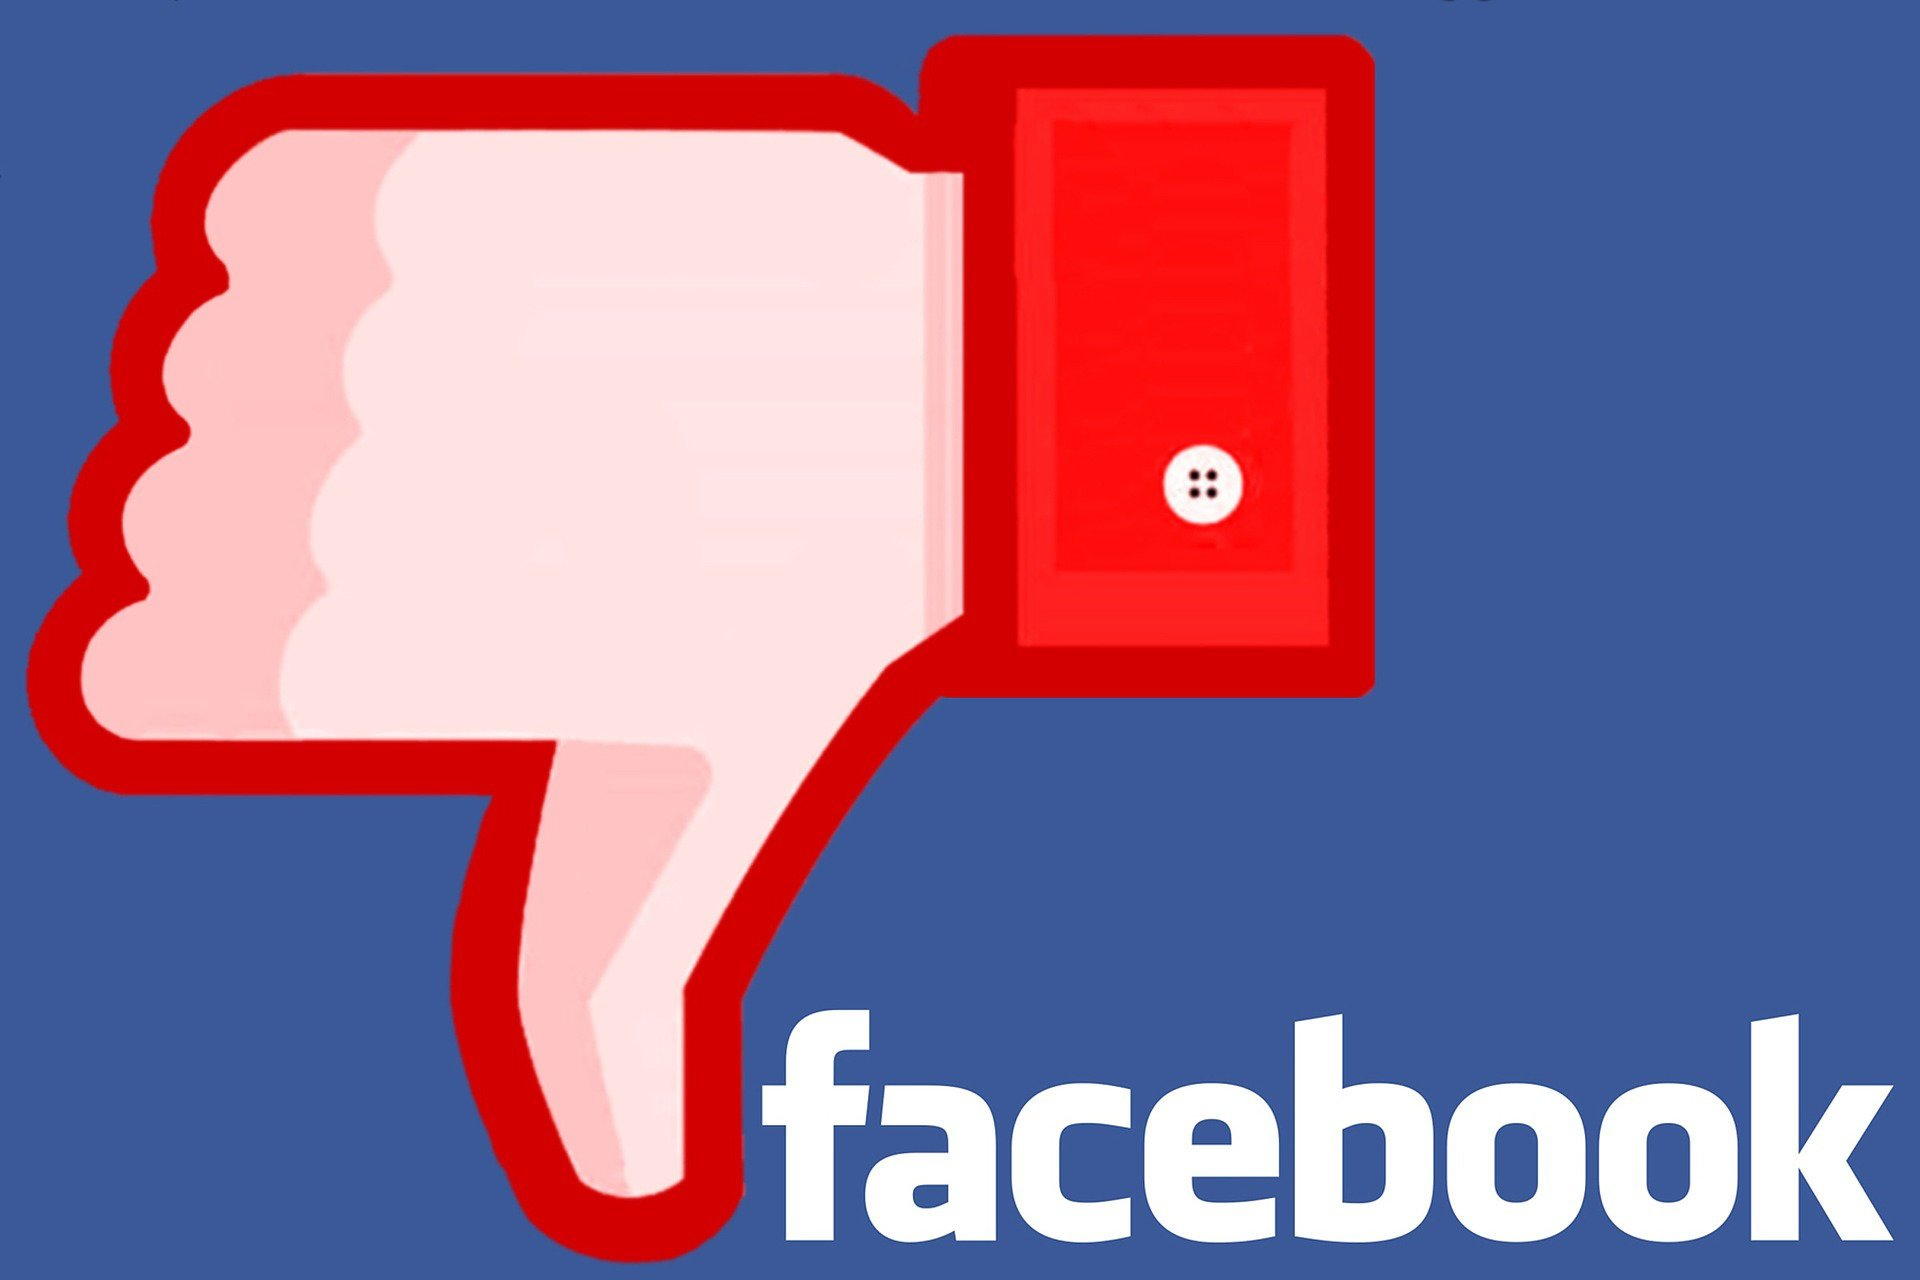 Facebook Thumbs Down - Image by Hermann Traub